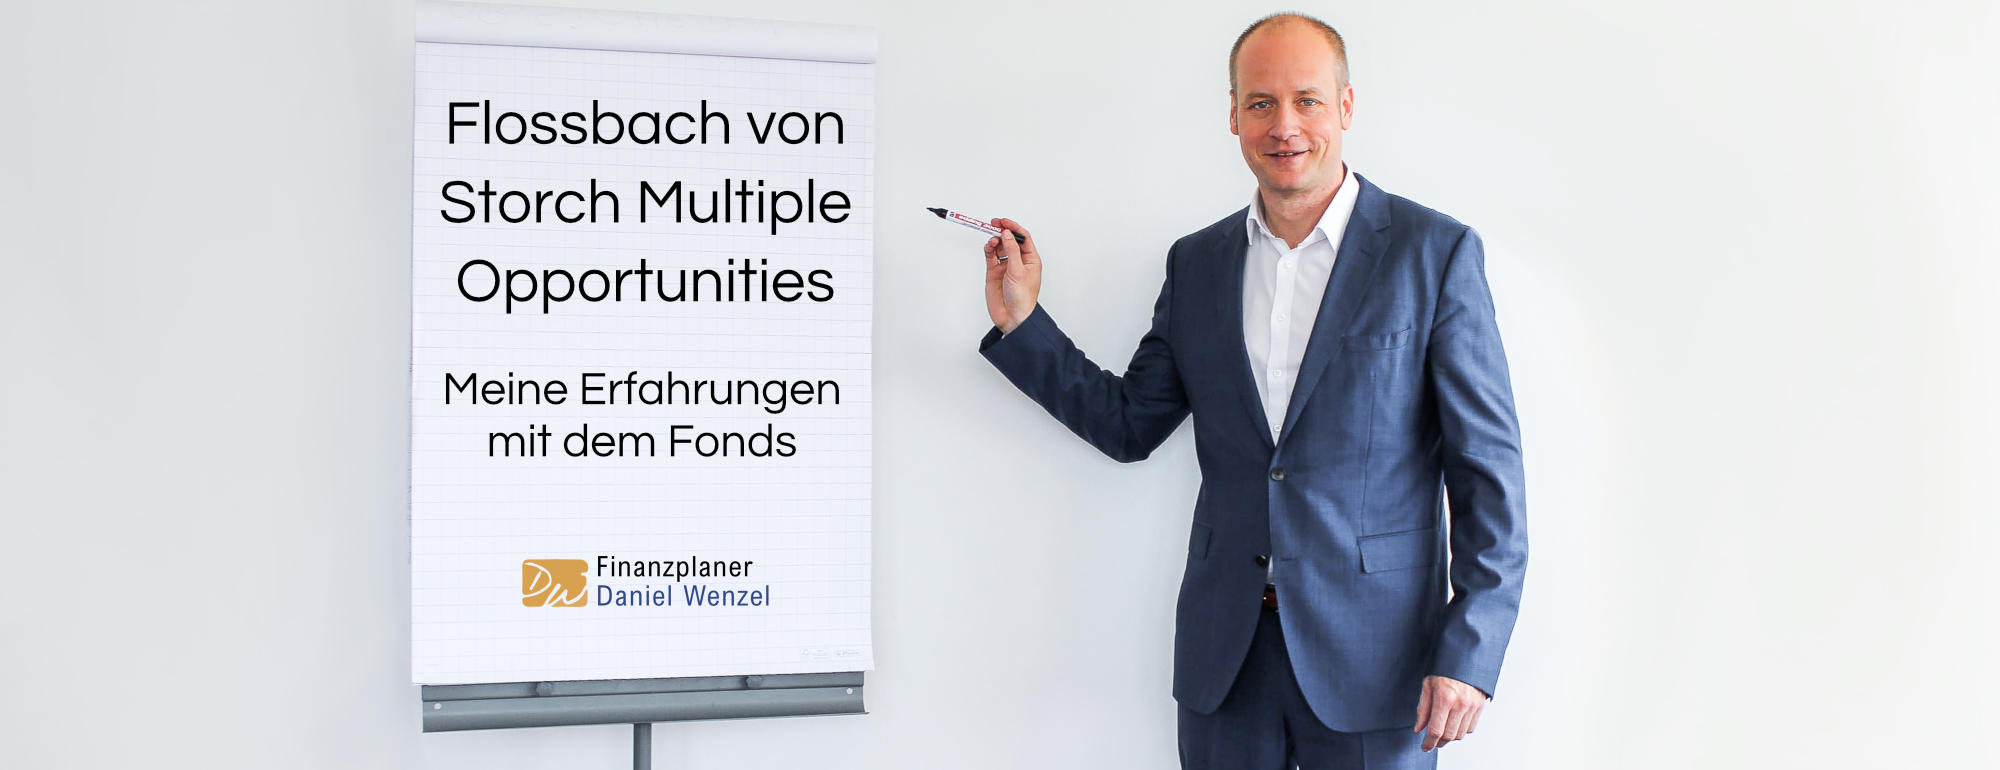 Flossbach von Storch Multiple Opportunities